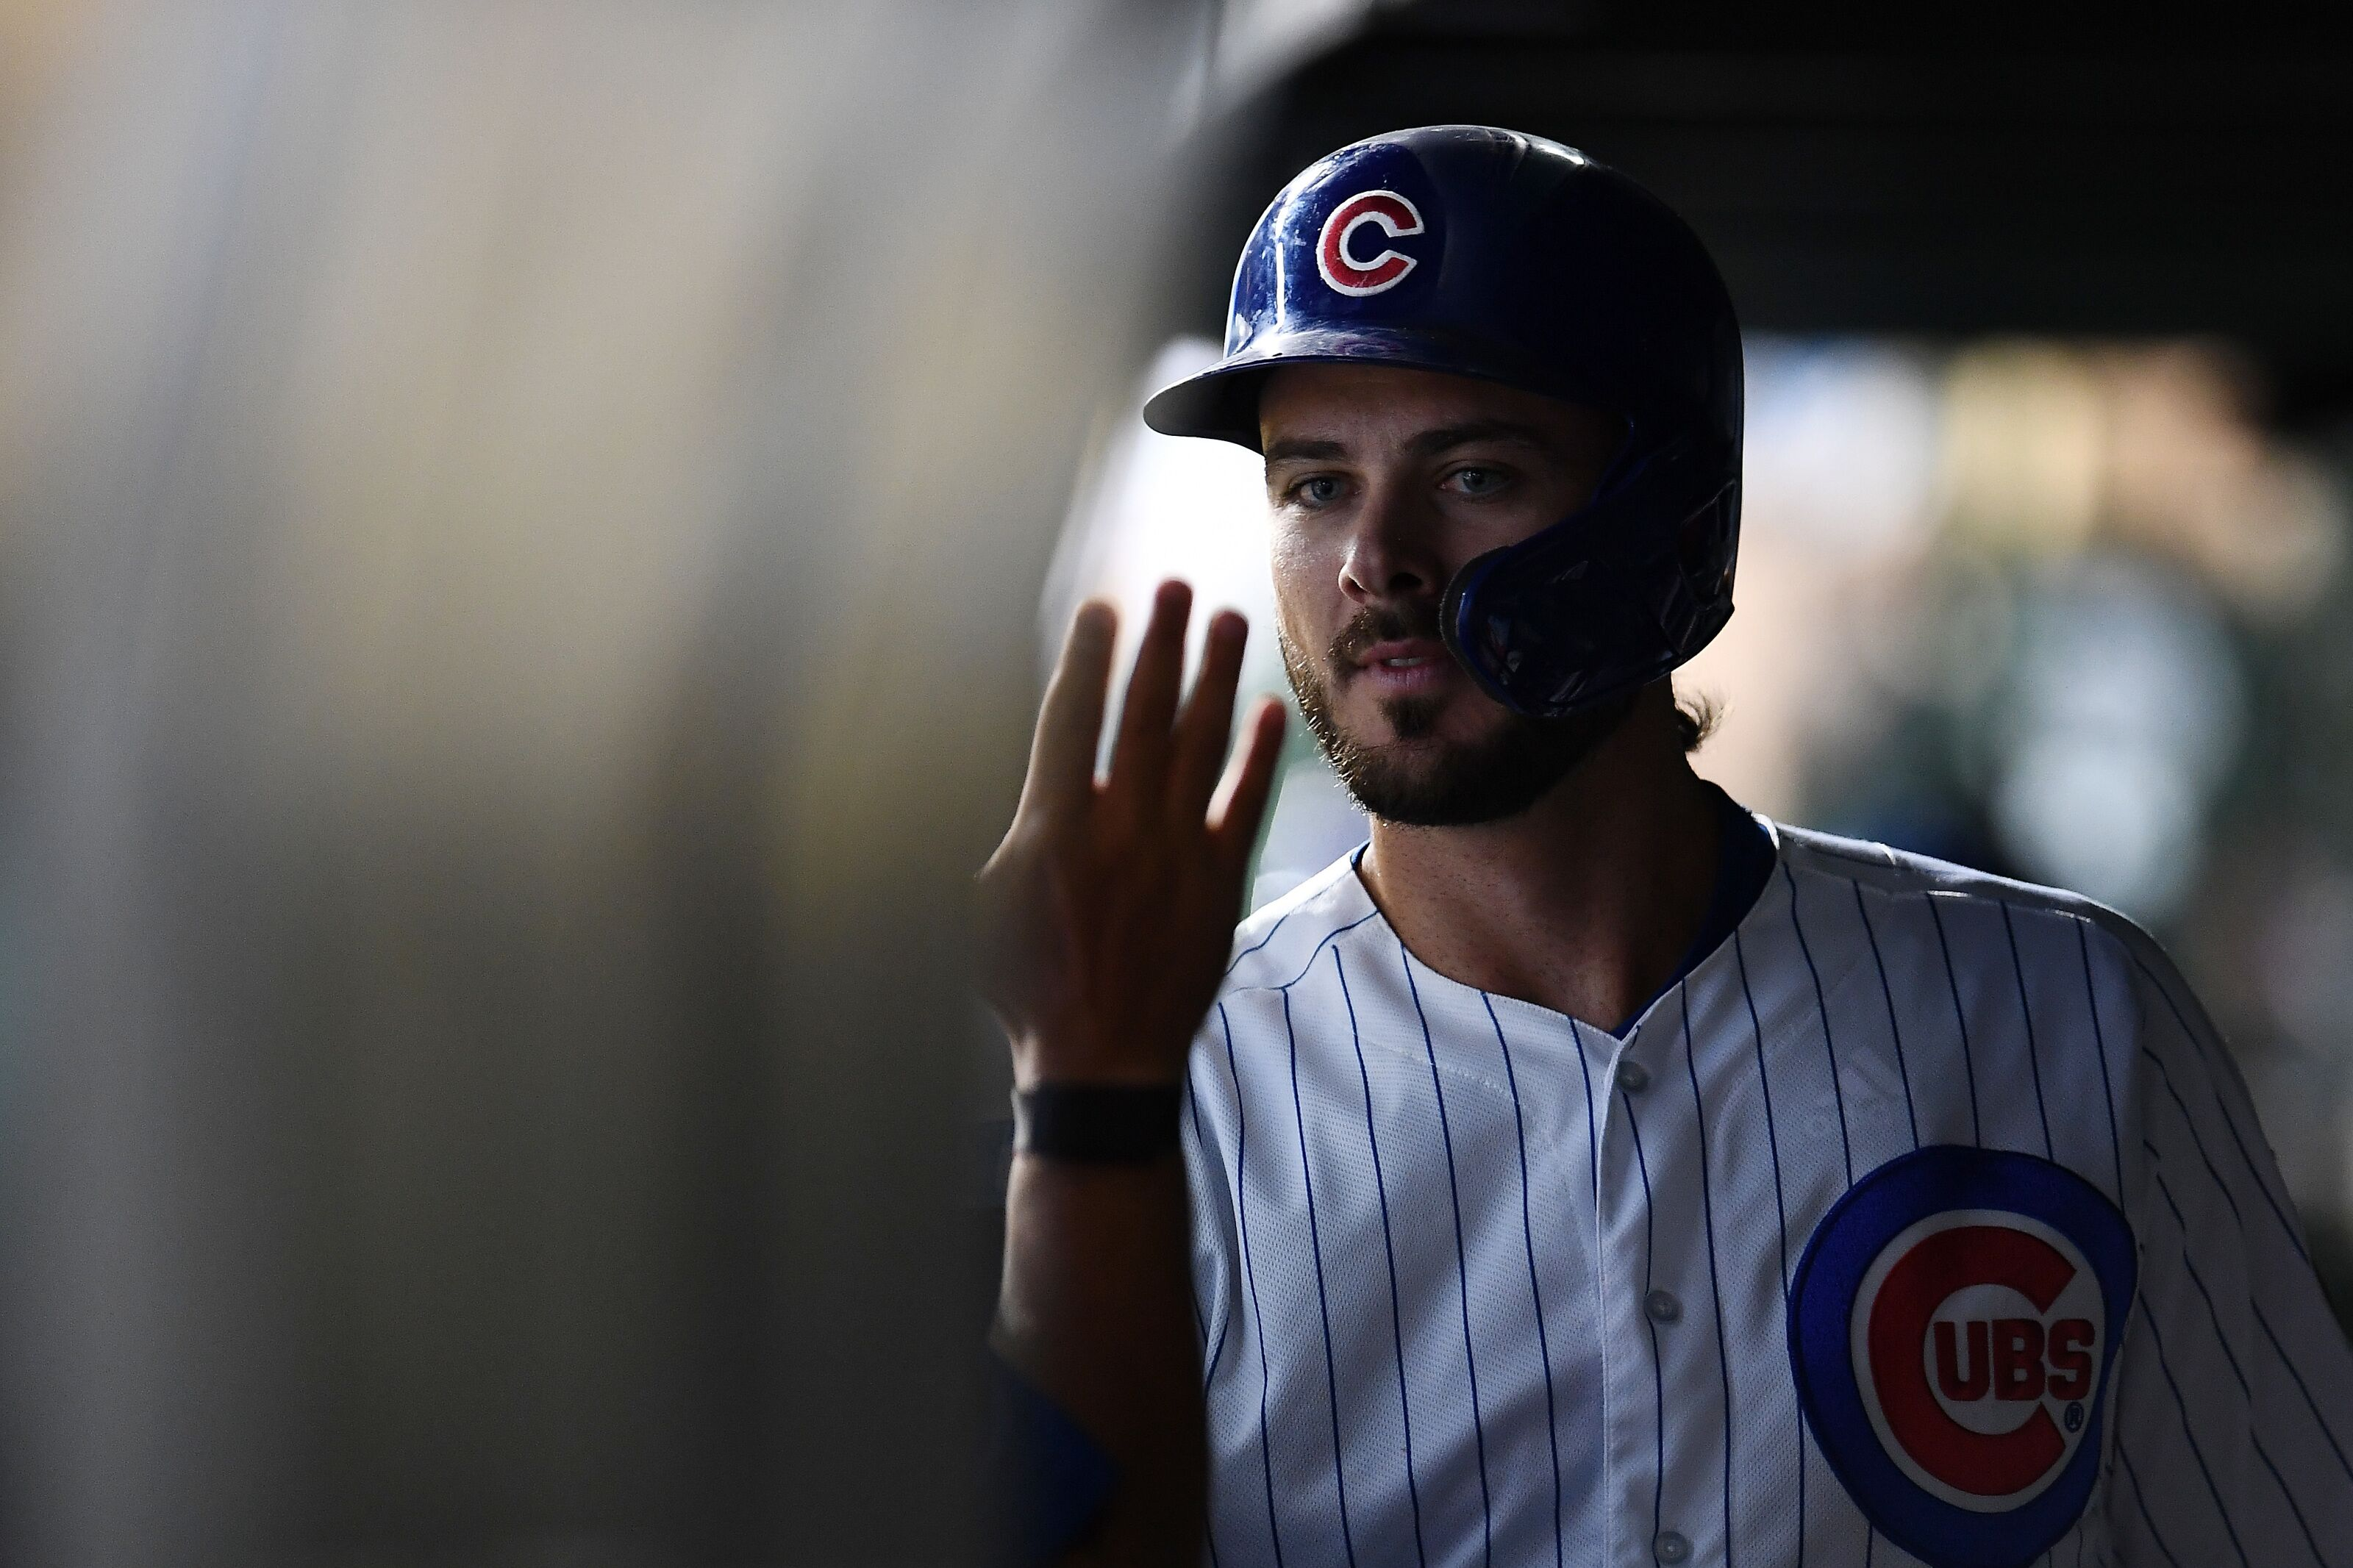 Chicago Cubs: After bounceback season, Kris Bryant is ready for more